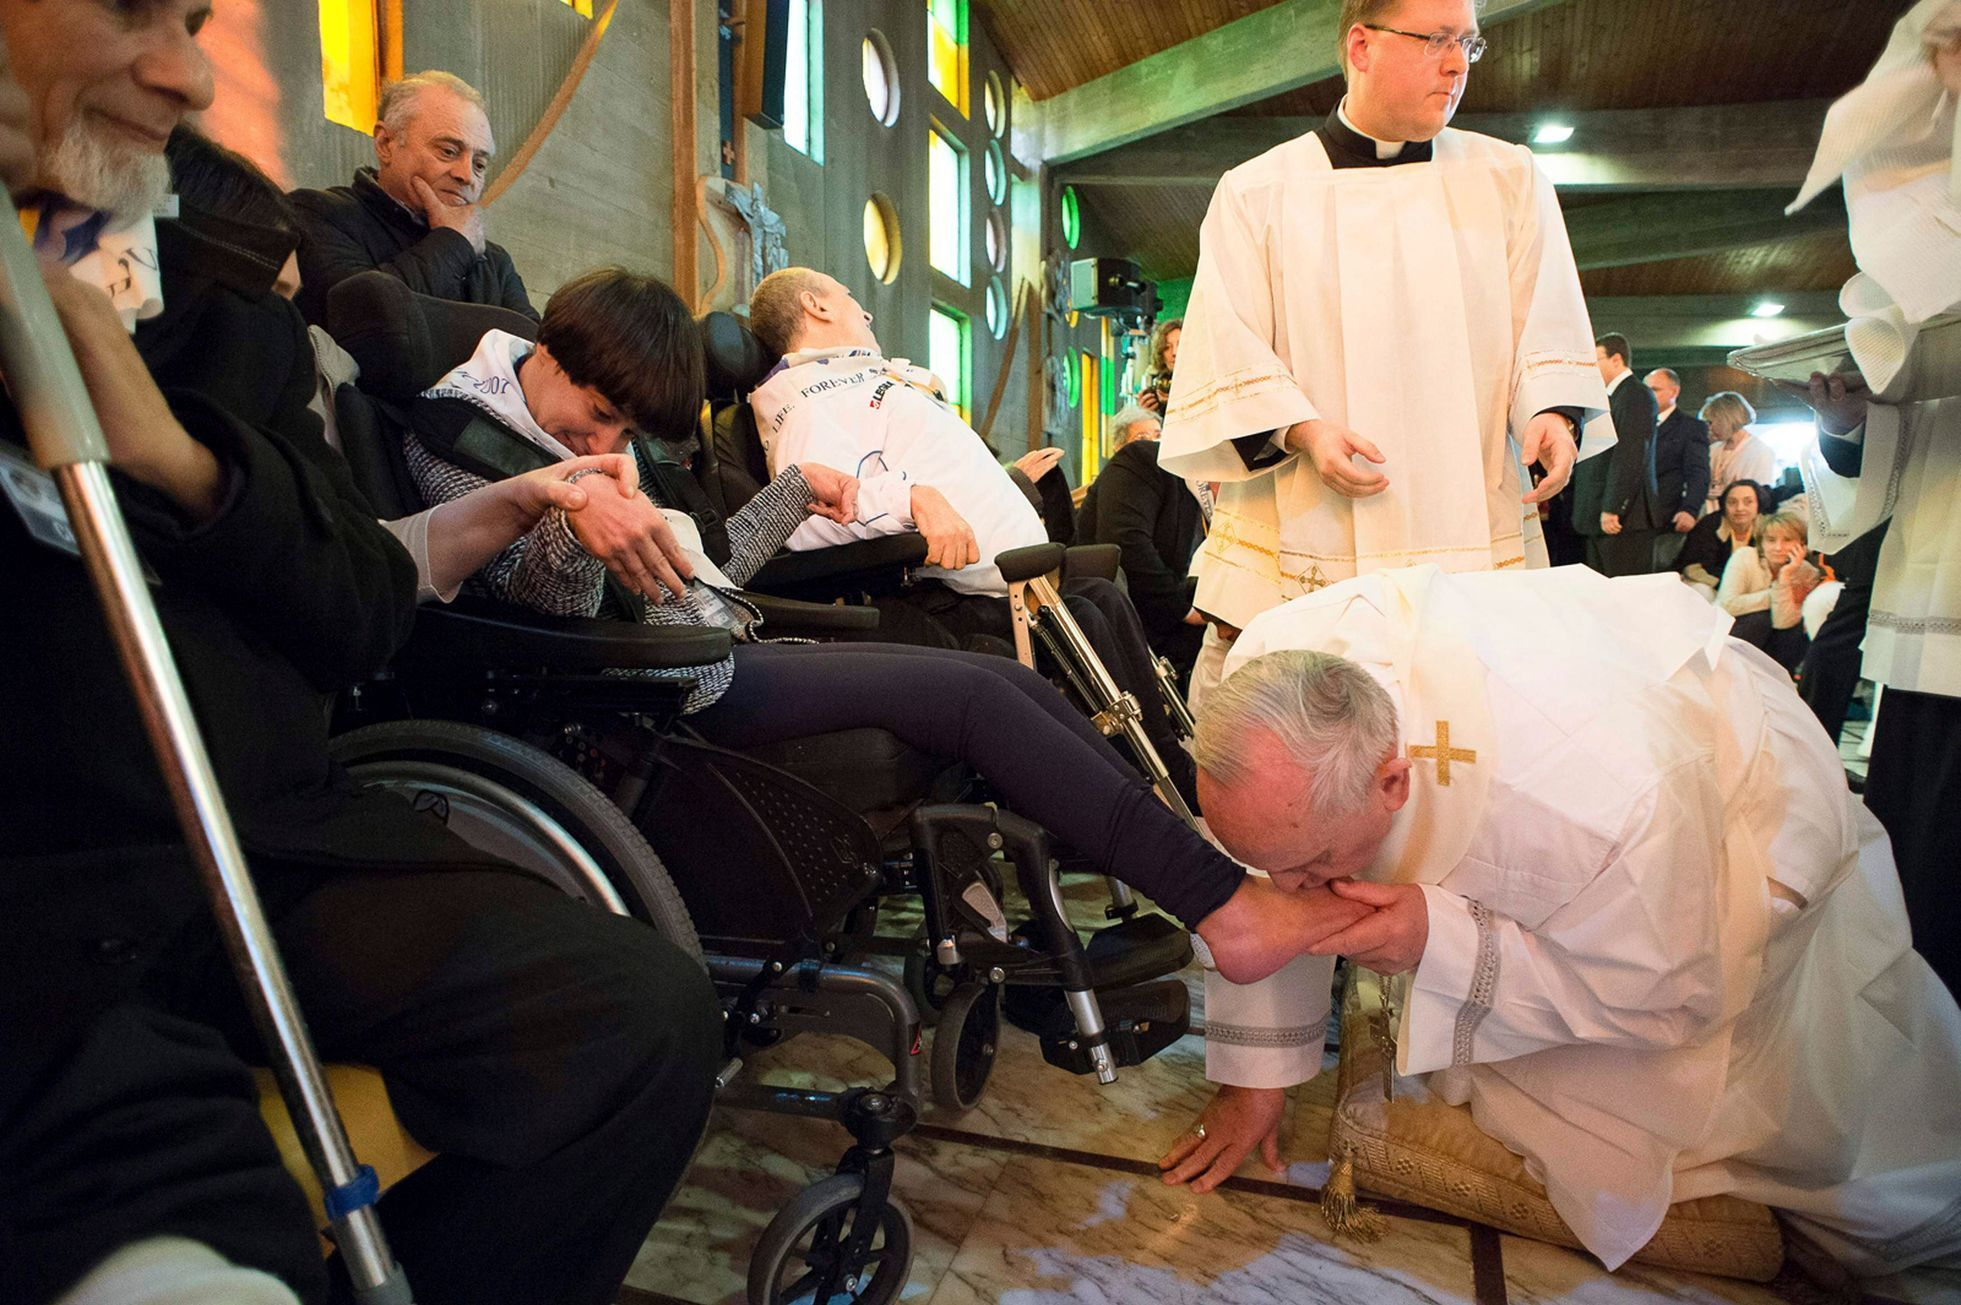 Pope Francis kisses the foot of a disabled person at the S. Maria della Provvidenza church in Rome, during Holy Thursday celebration